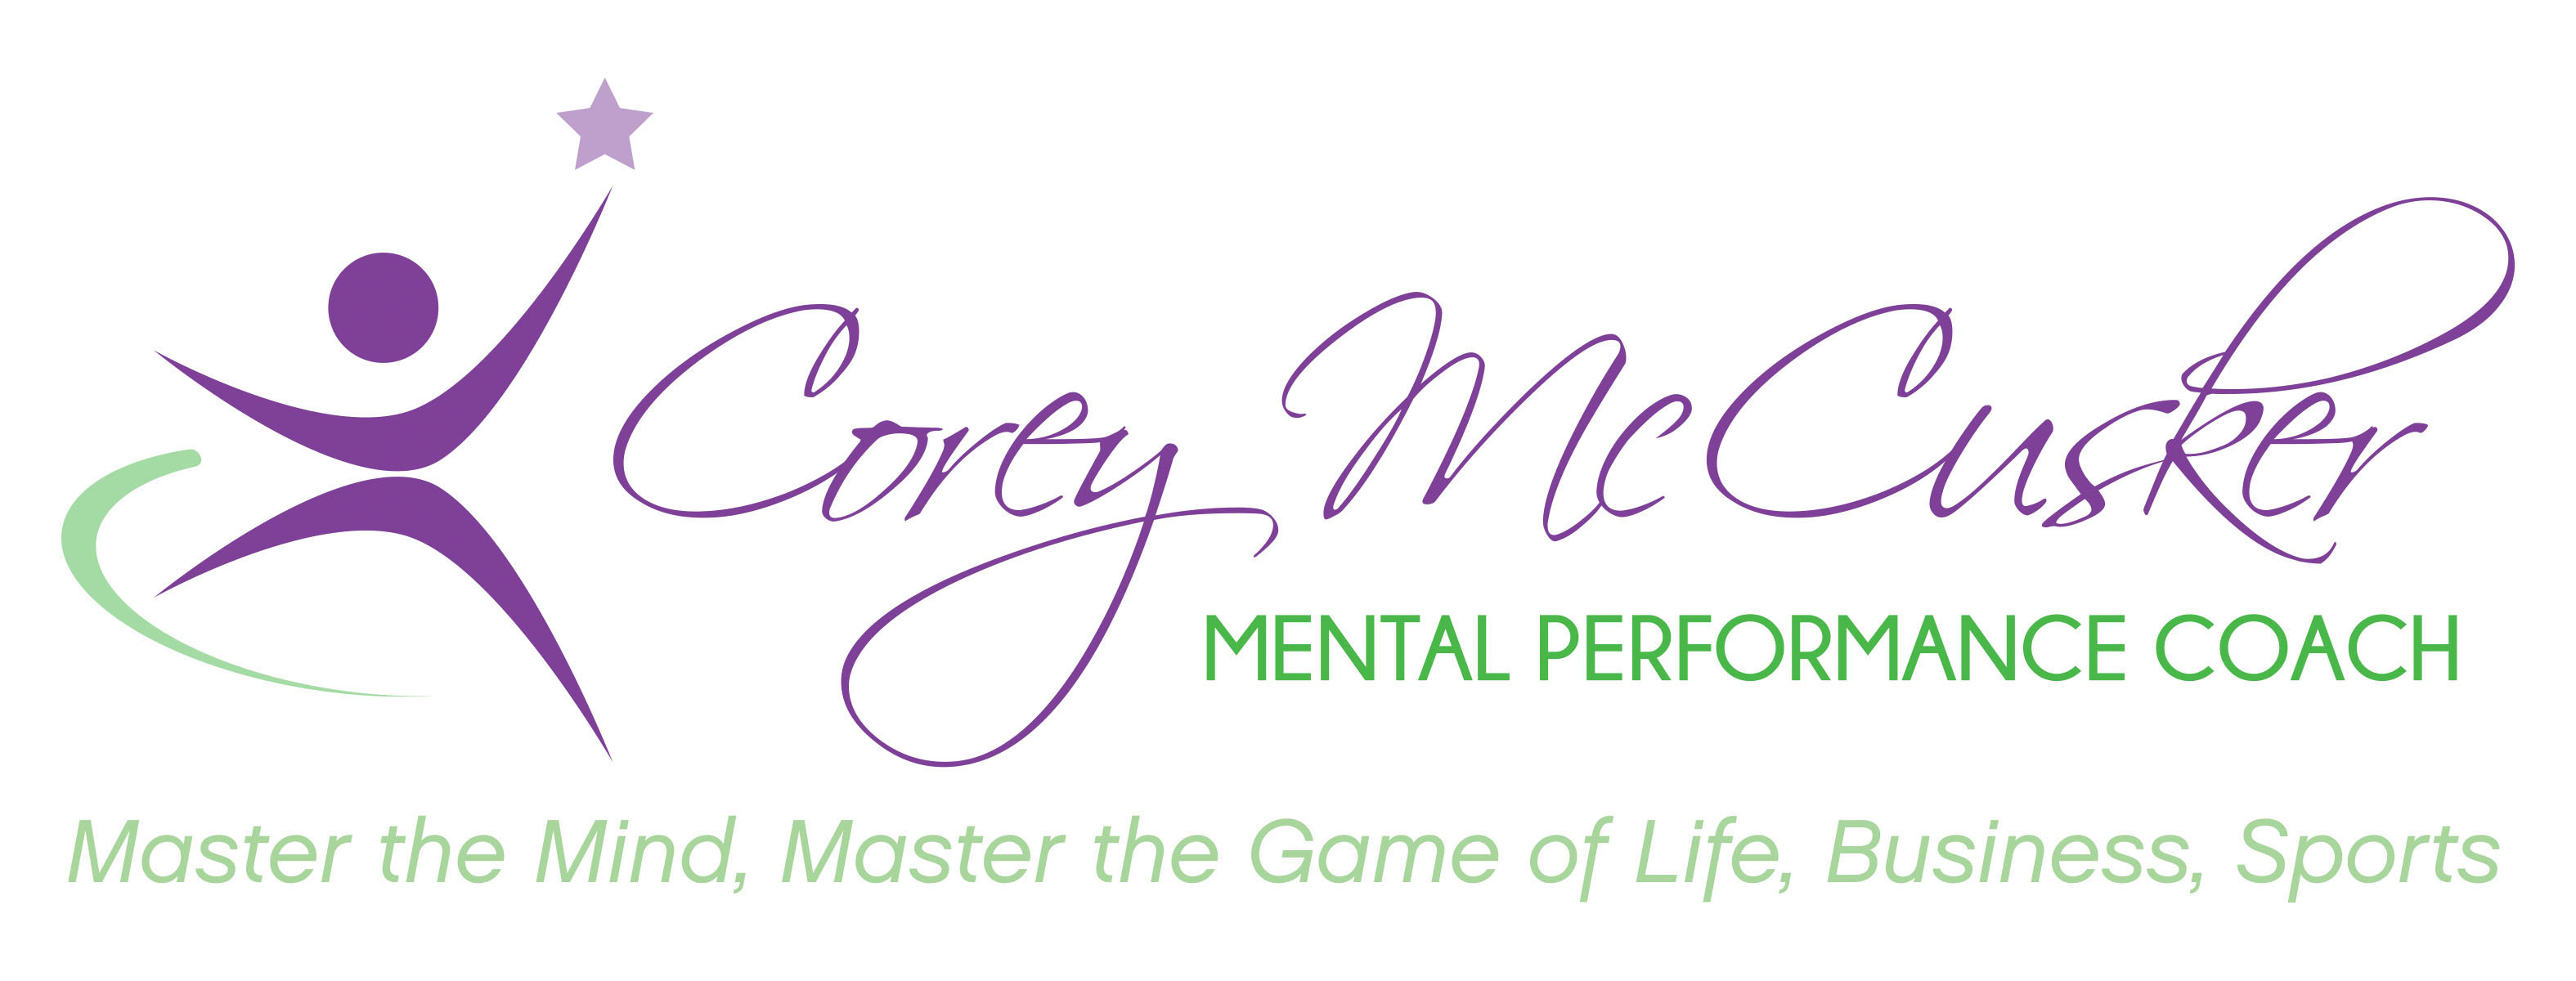 Corey McCusker Mental Performance Coach